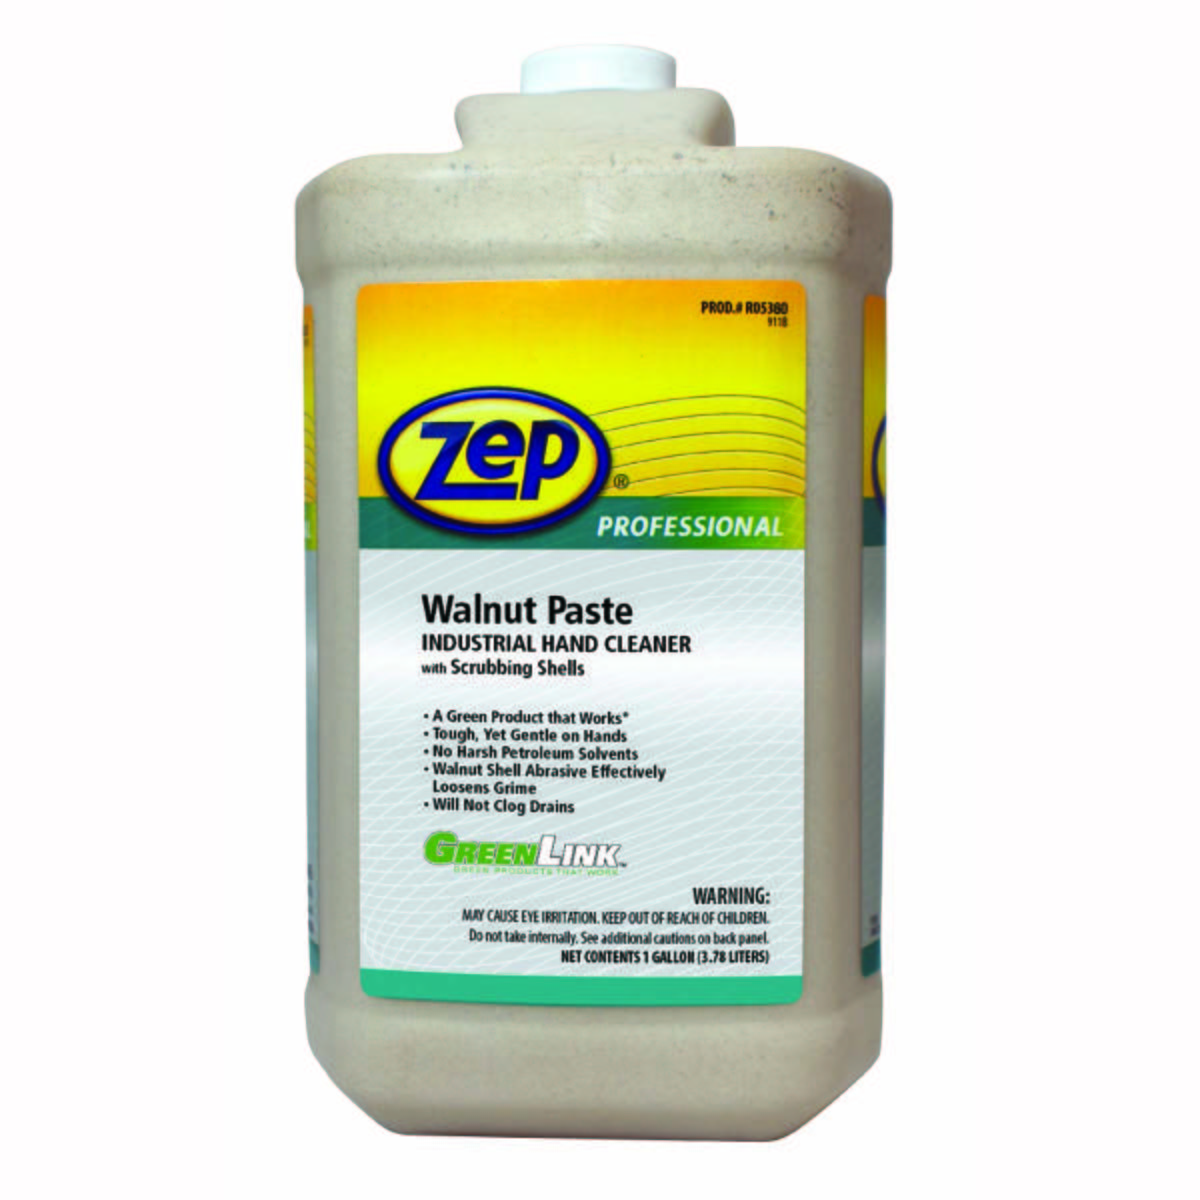 ZEP Walnut Paste Industrial Hand Cleaner With Scrubbing Shells